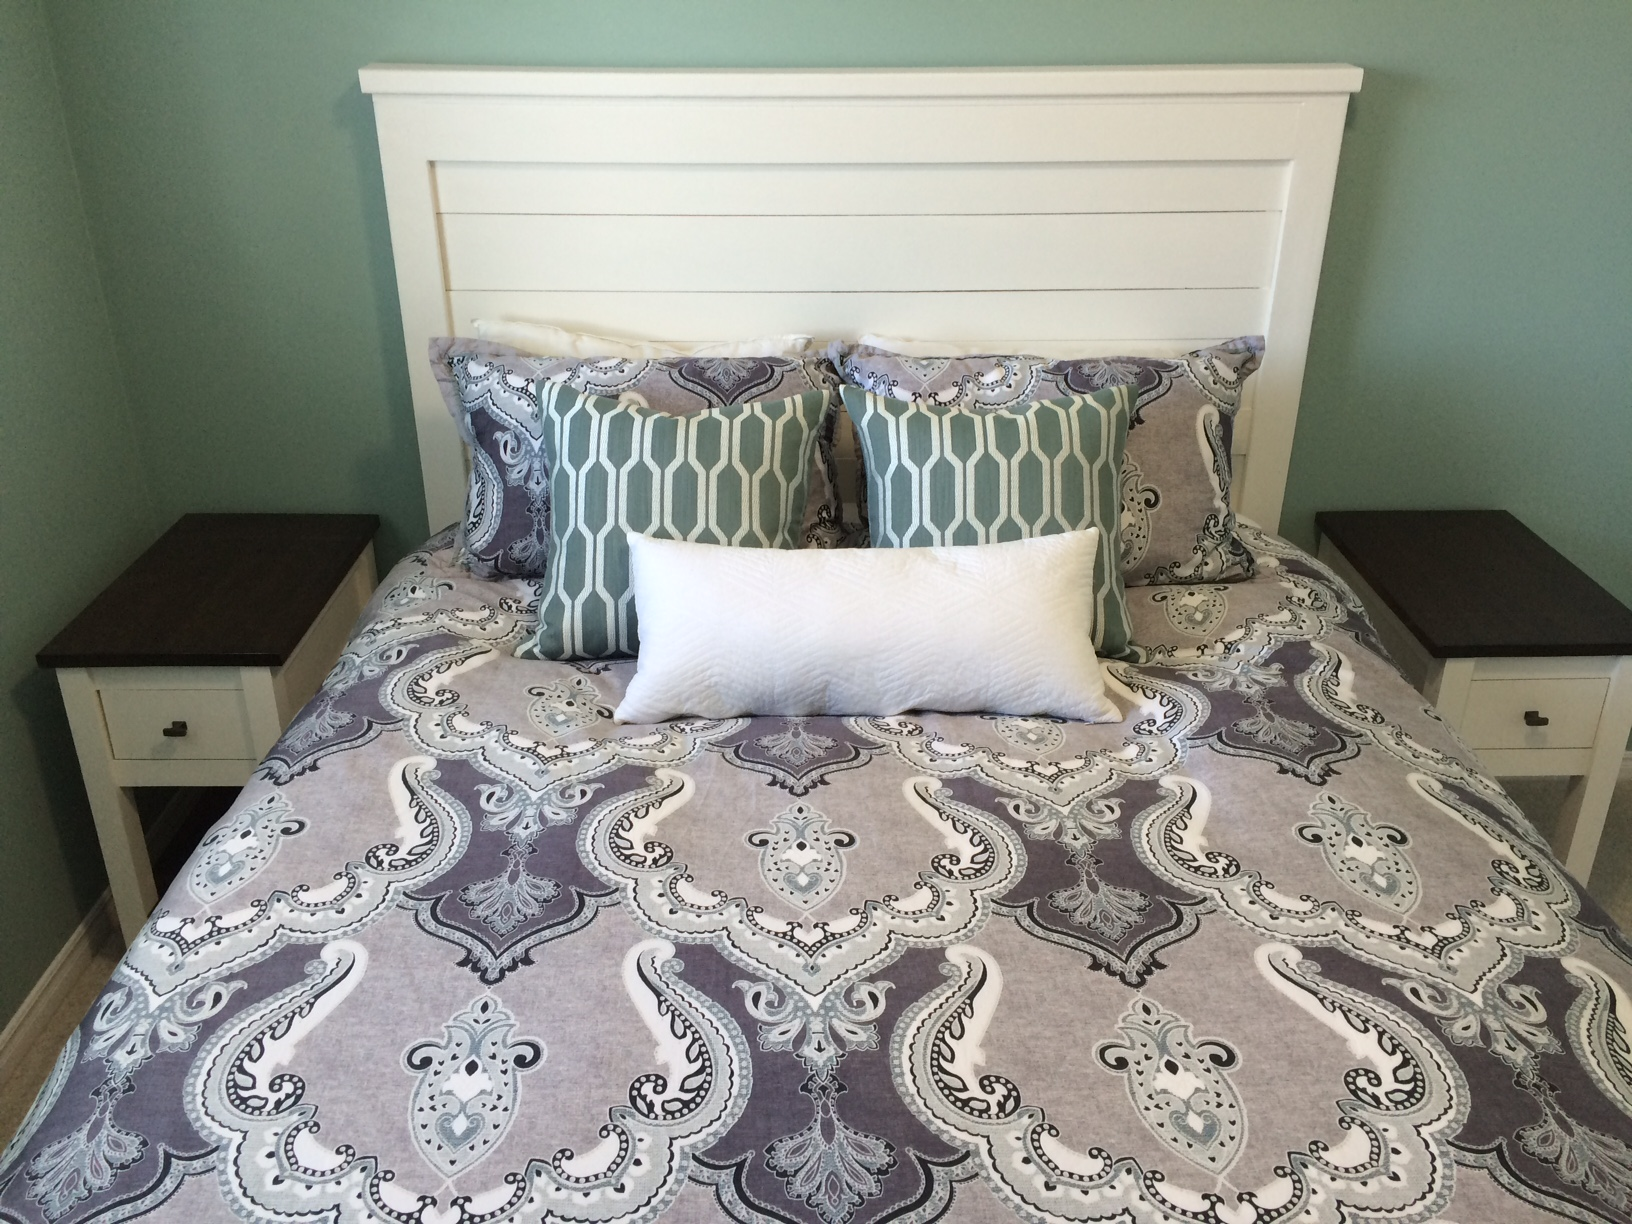 Ana White Country Side Tables And Headboard Diy Projects